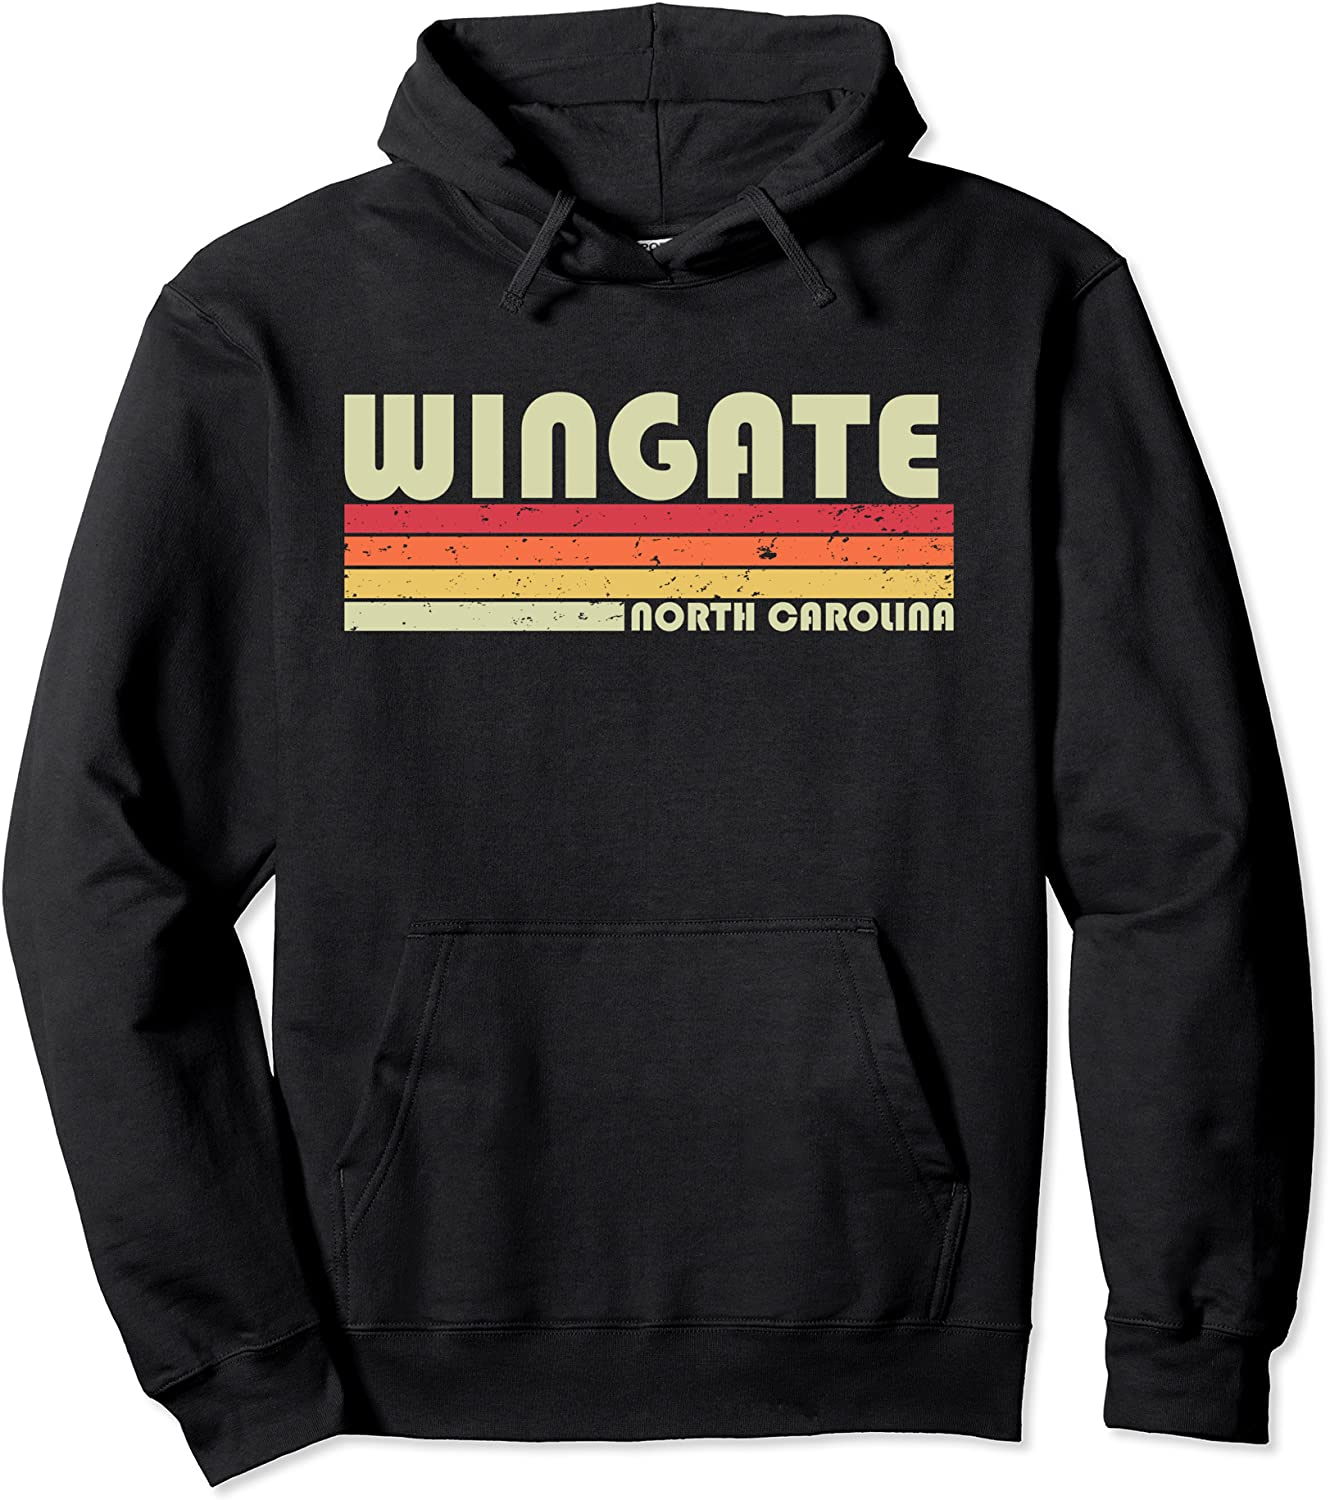 WINGATE NC NORTH CAROLINA Funny City Home Roots Gift Retro Pullover Hoodie